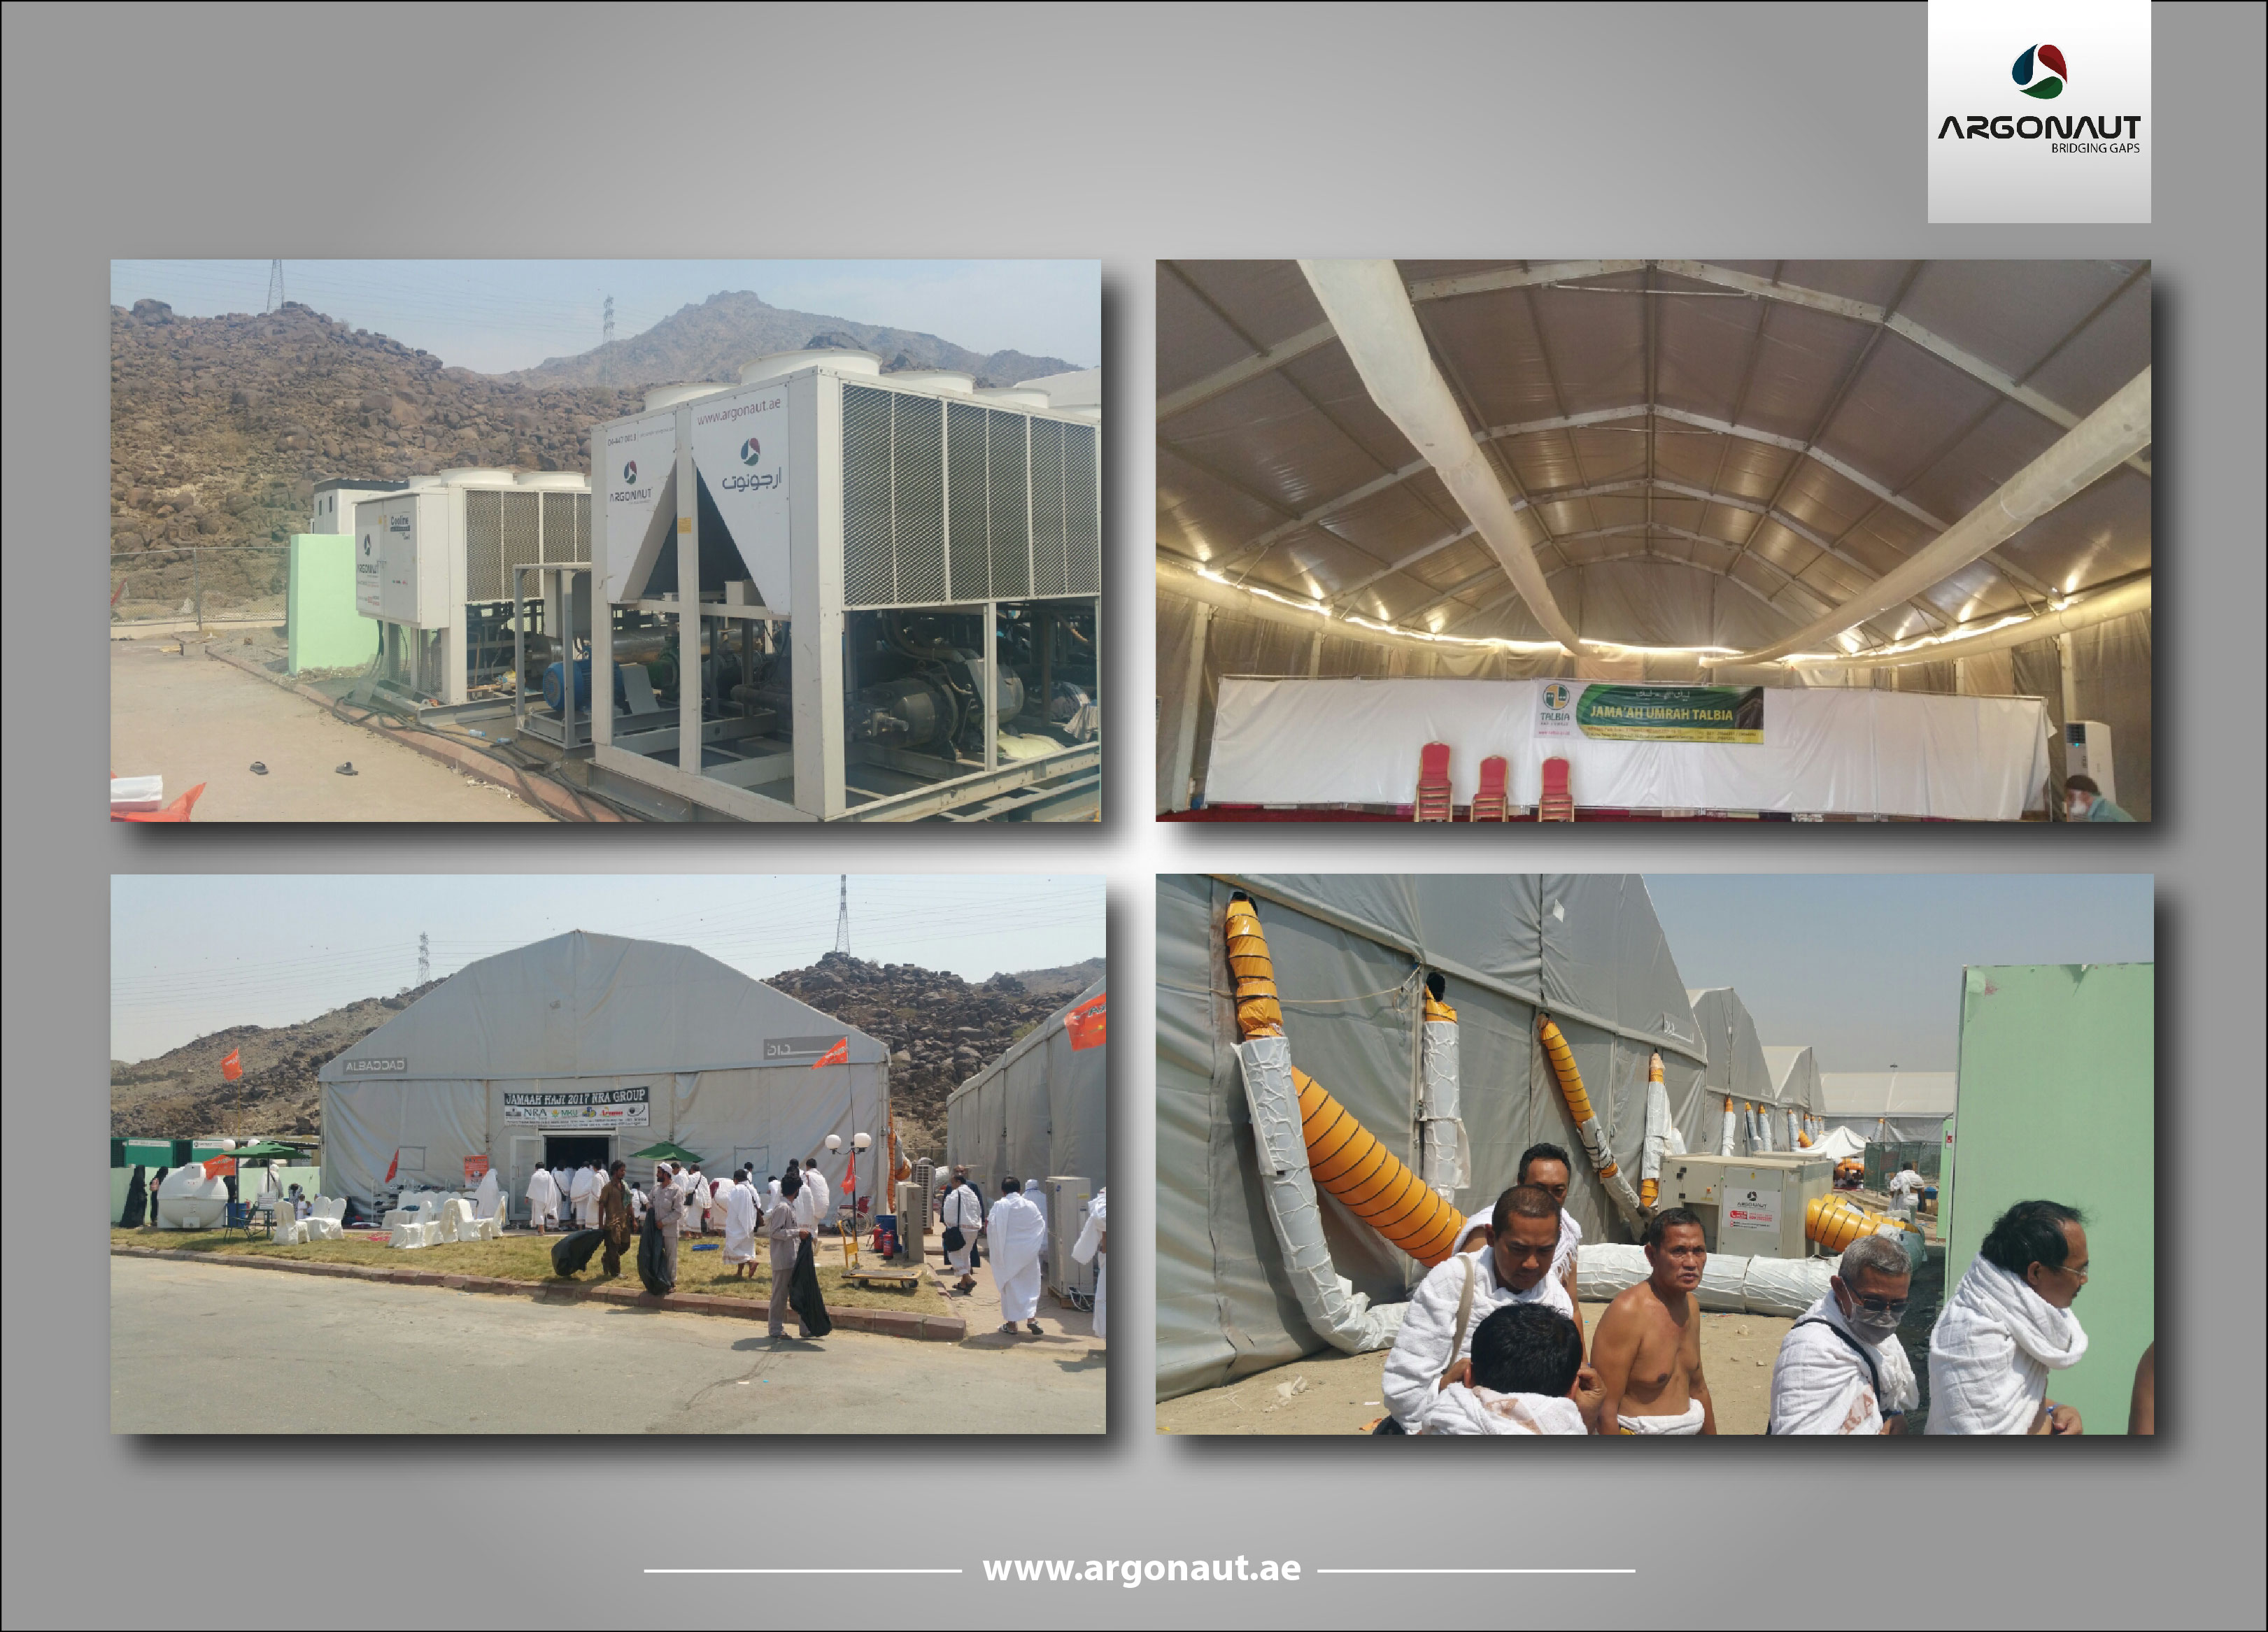 Argonaut Successfully Stepped in Arafat as the First Temporary Cooling Company for Arafat Tents.